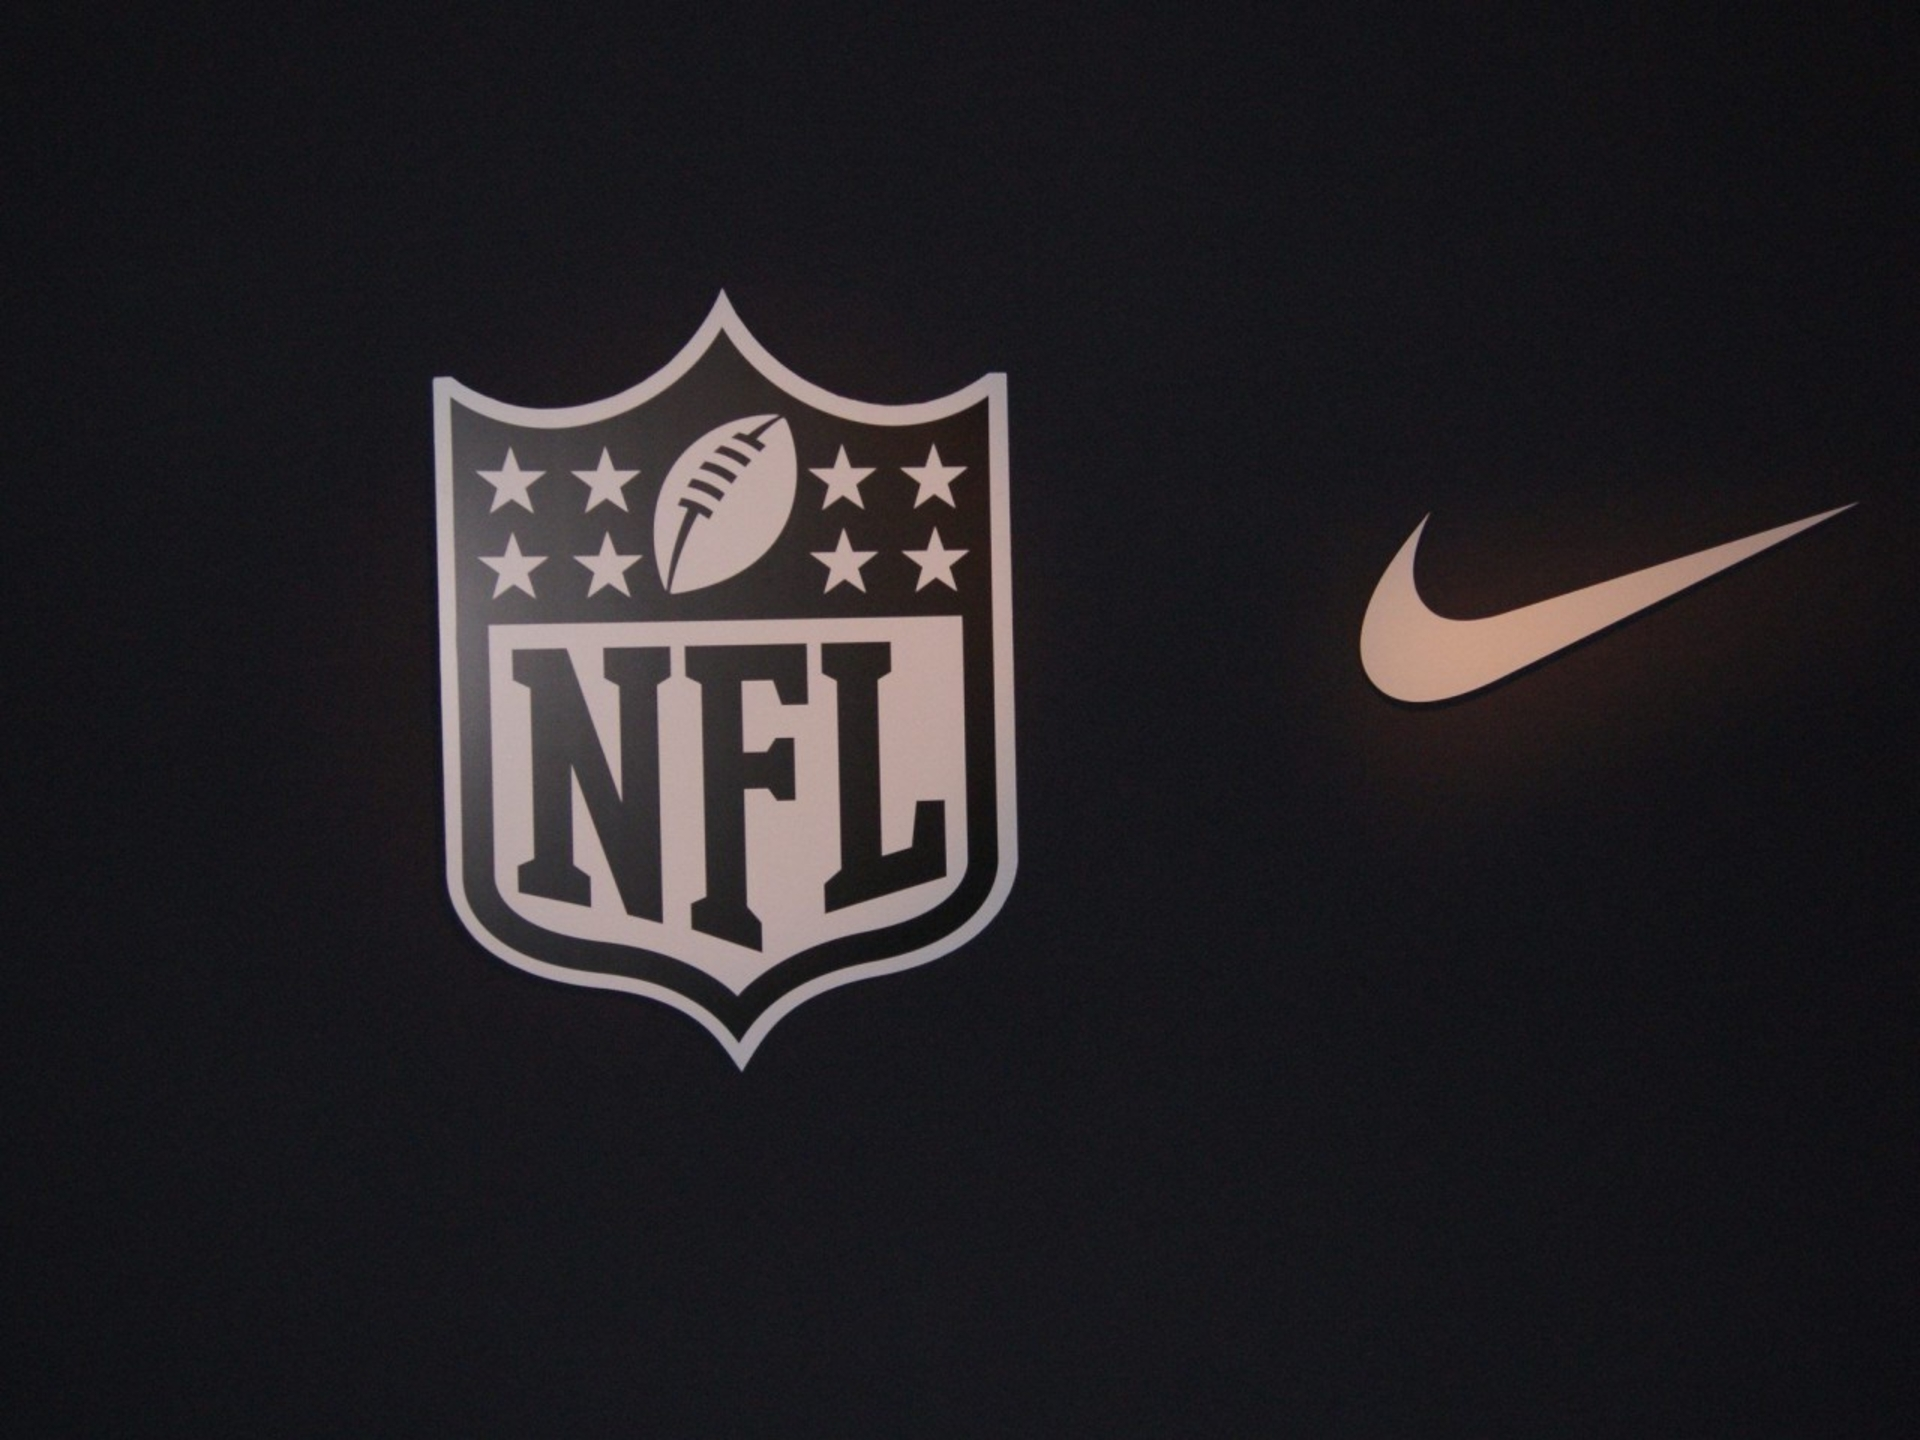 Nike Nfl Football Wallpaper Images amp Pictures   Becuo 1920x1440